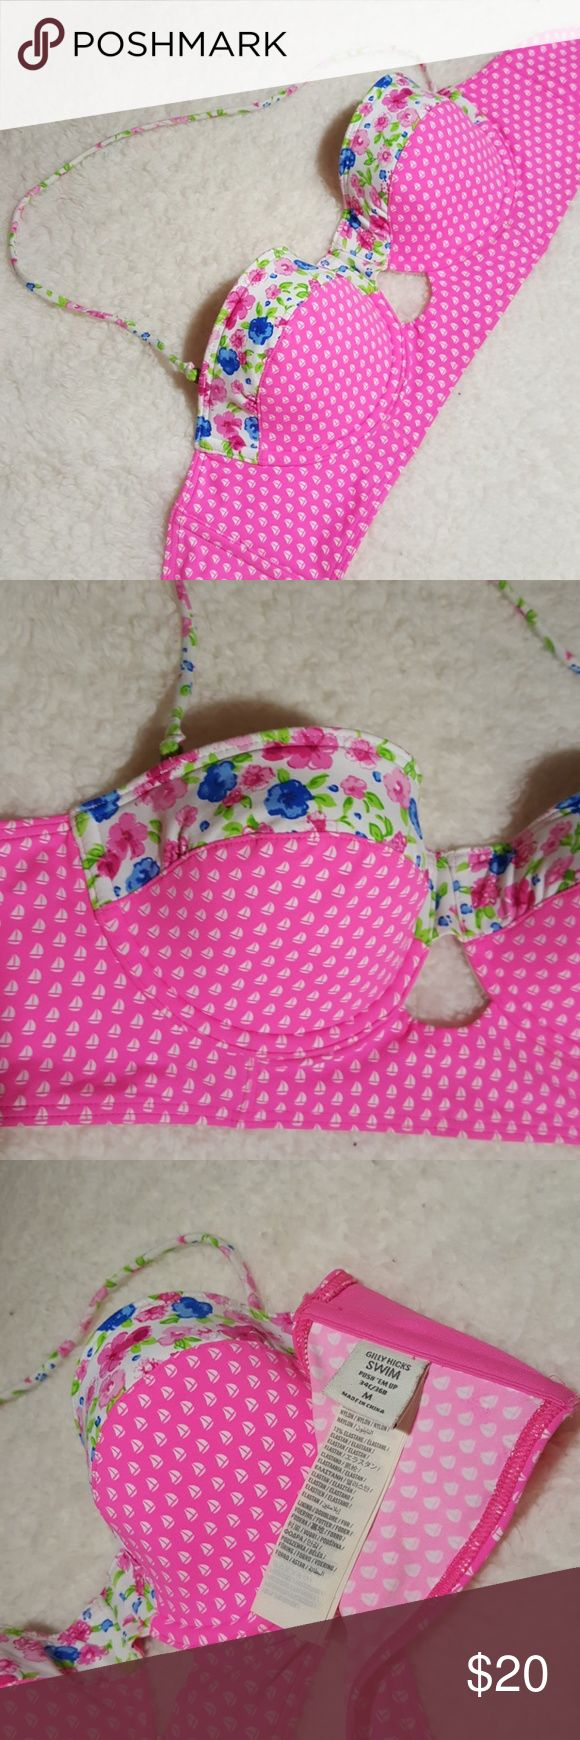 Gilly hicks swin top Floral and sail design in  great condition. Like new just too small Gilly Hicks Swim